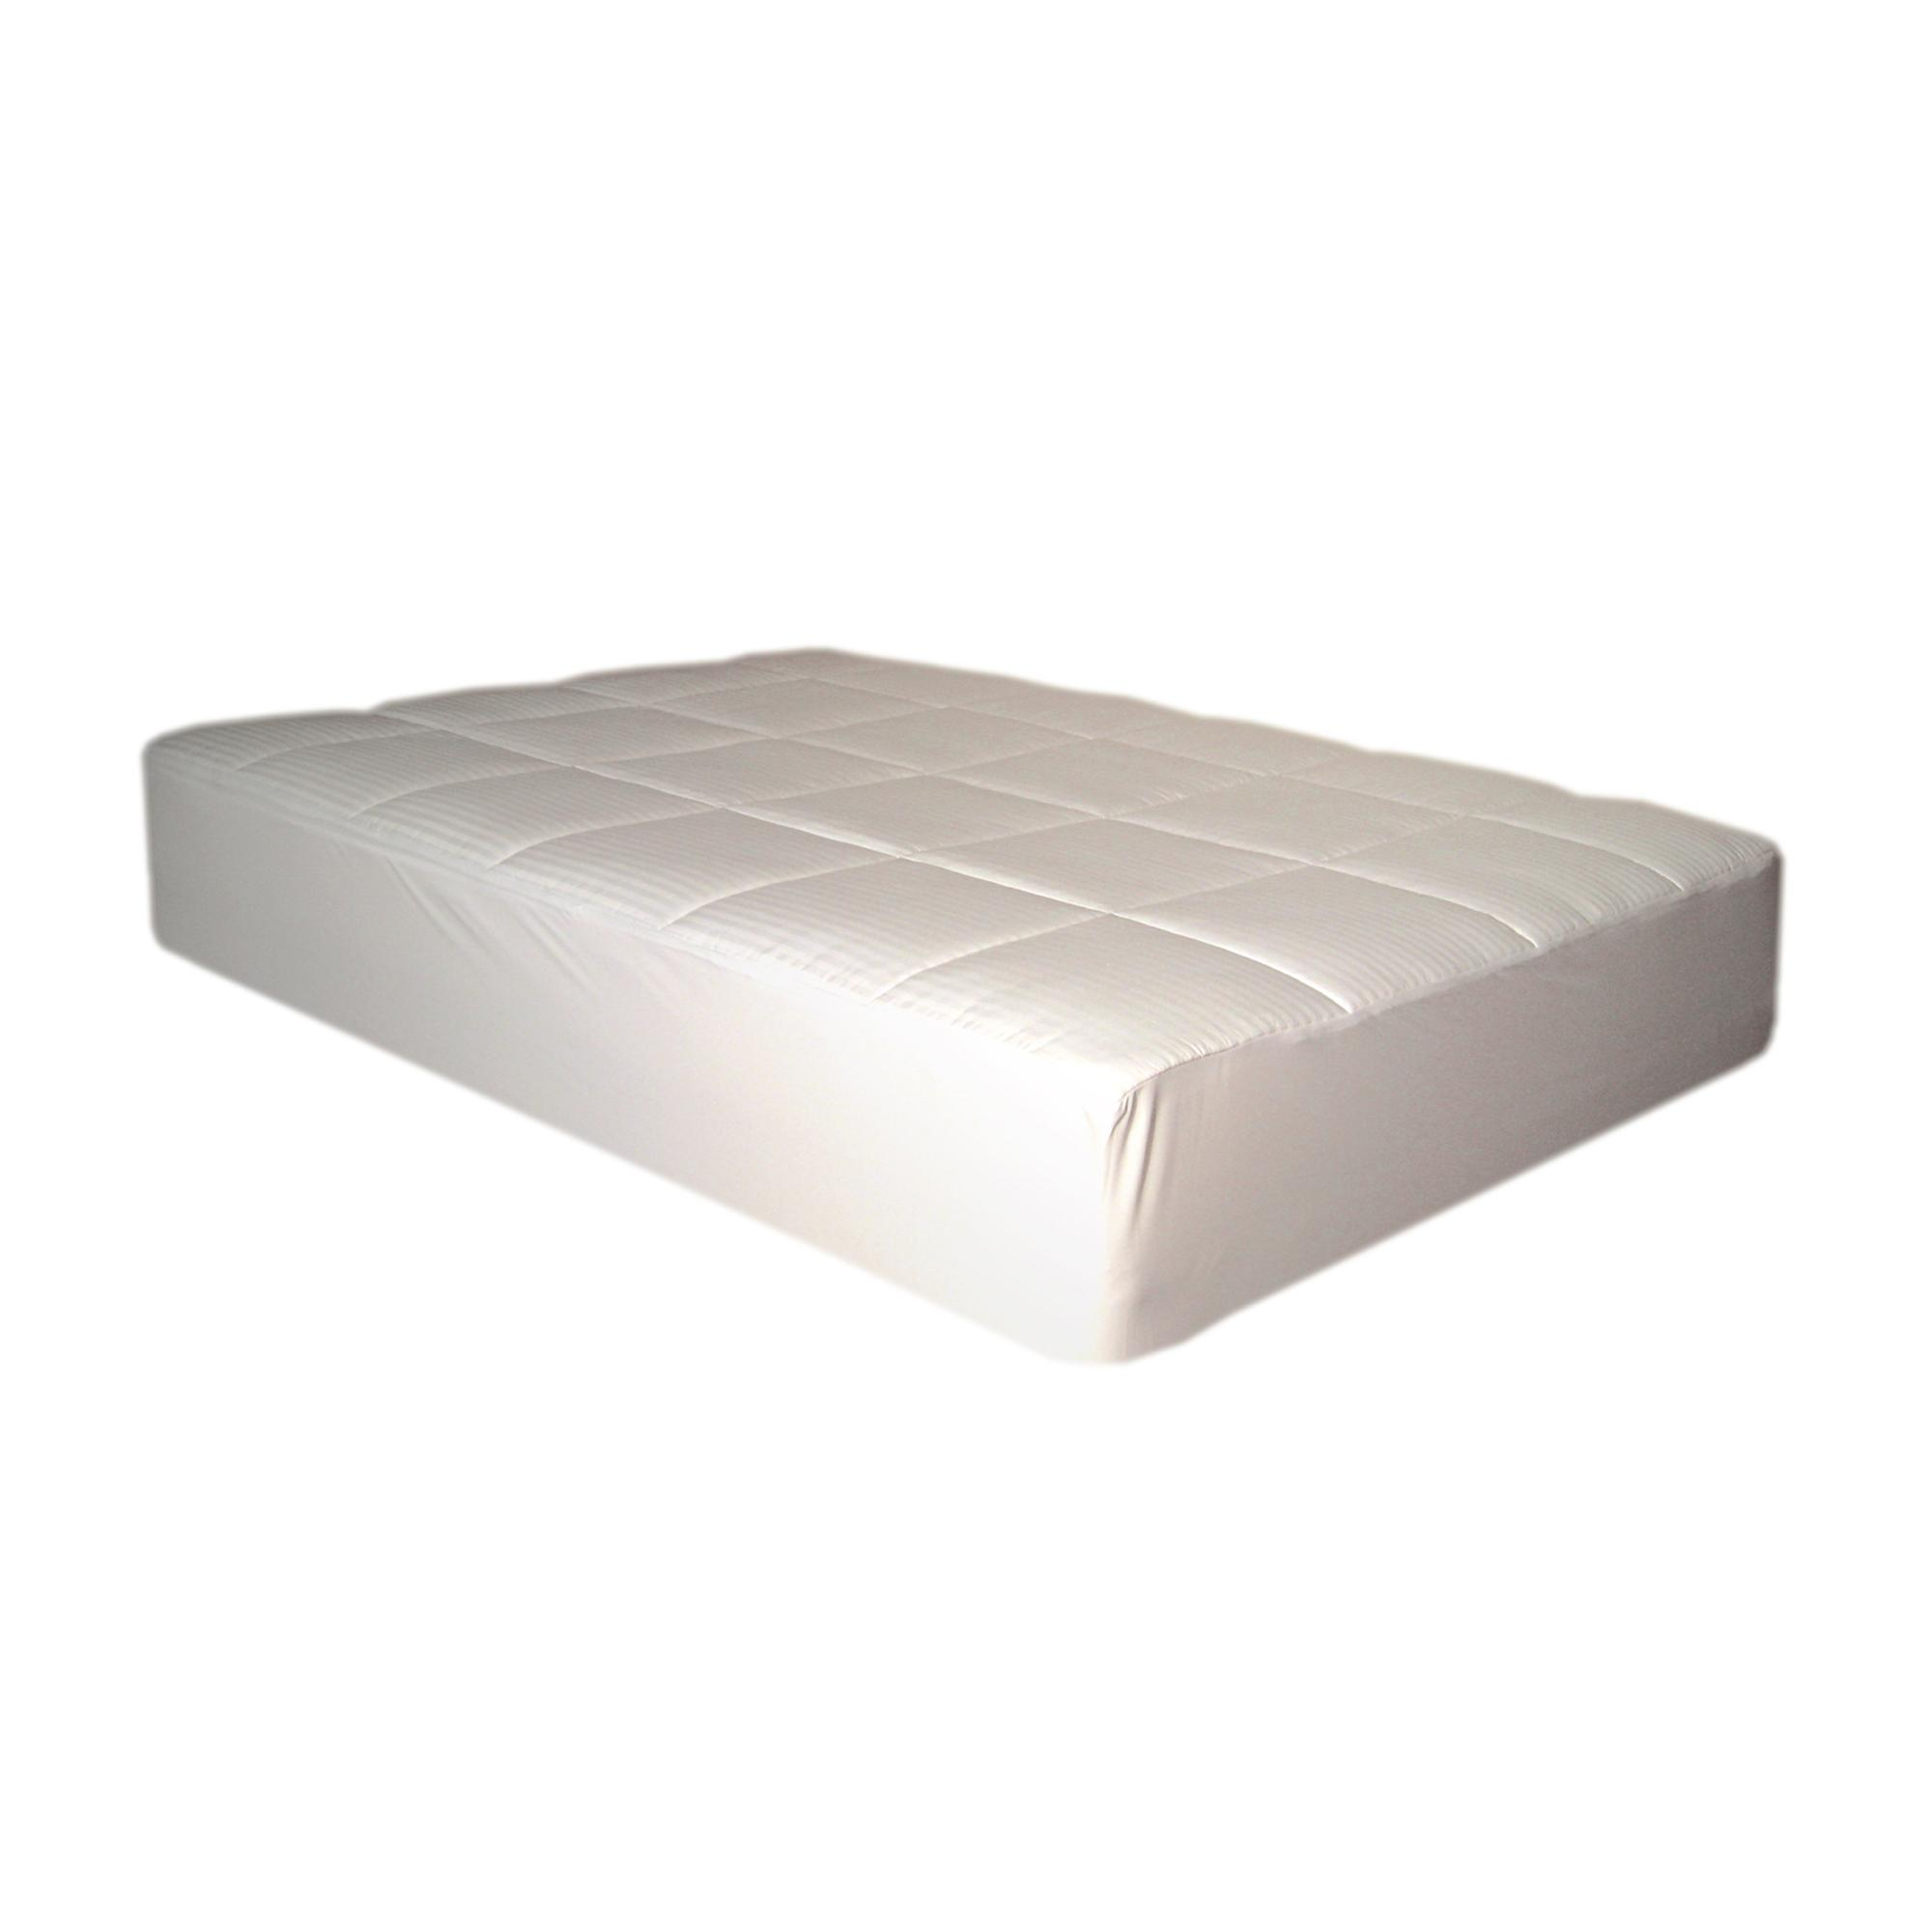 Nanofibre Water Resistant Queen/ King/ Cal King-size Mattress Pad